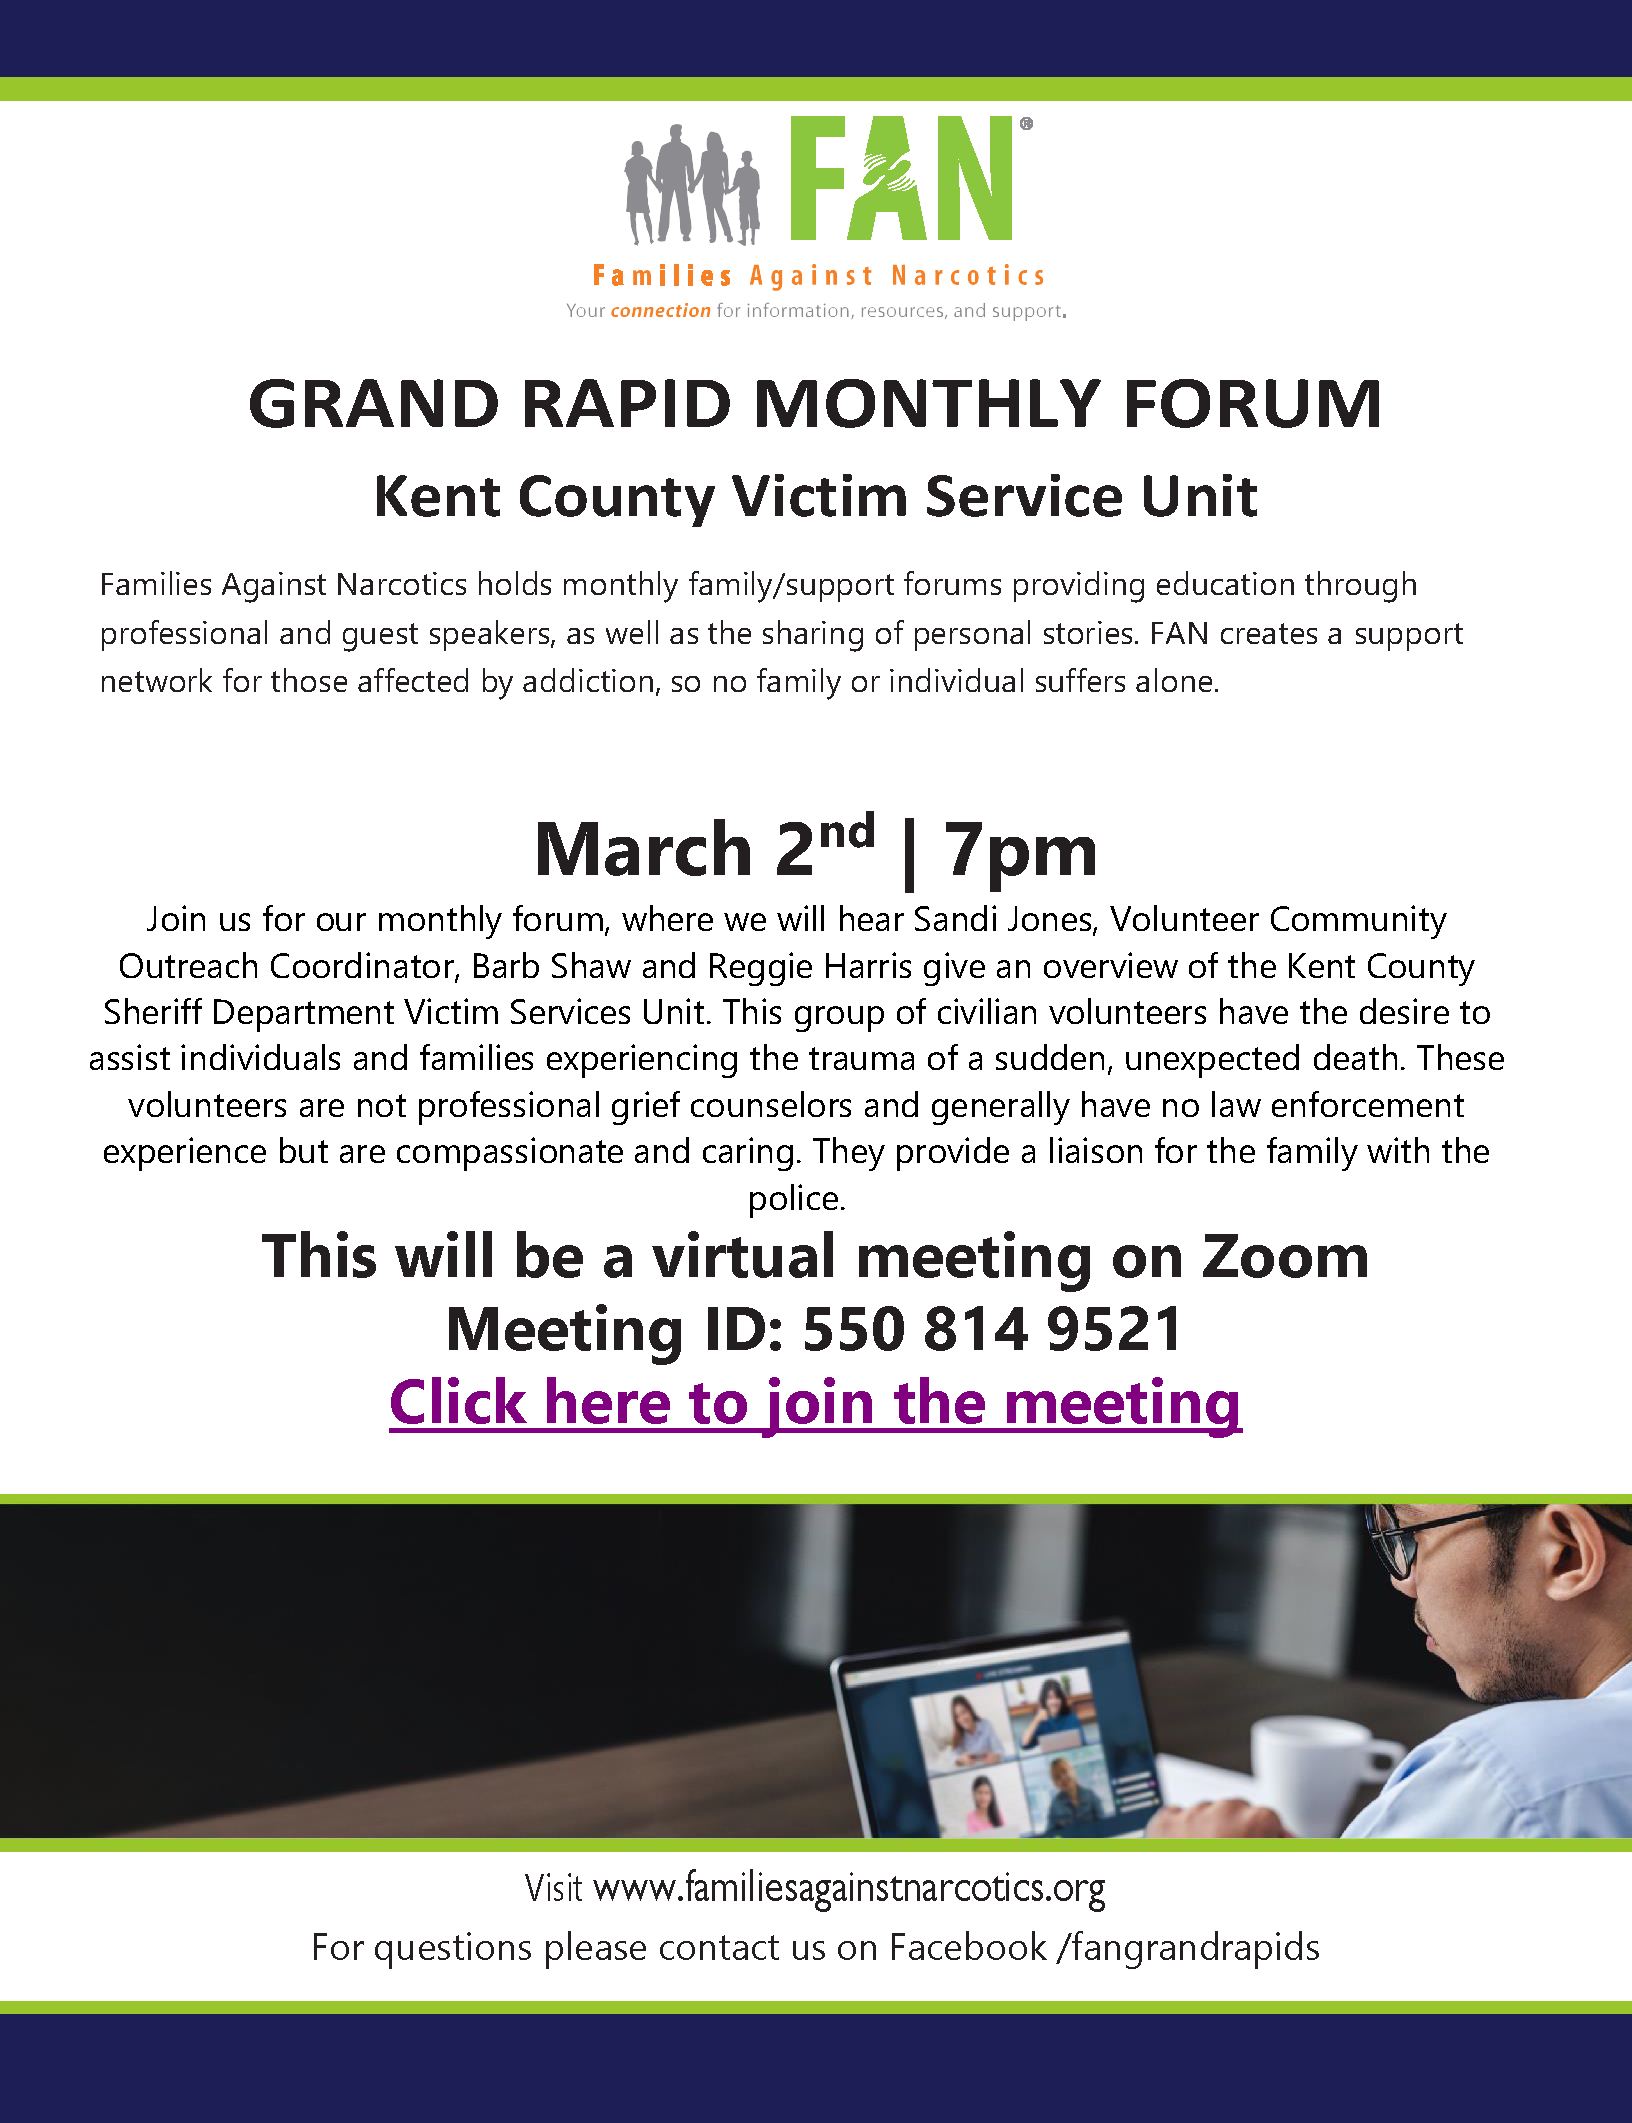 Grand Rapids Families Against Narcotics (FAN) Meeting 03/02/2021